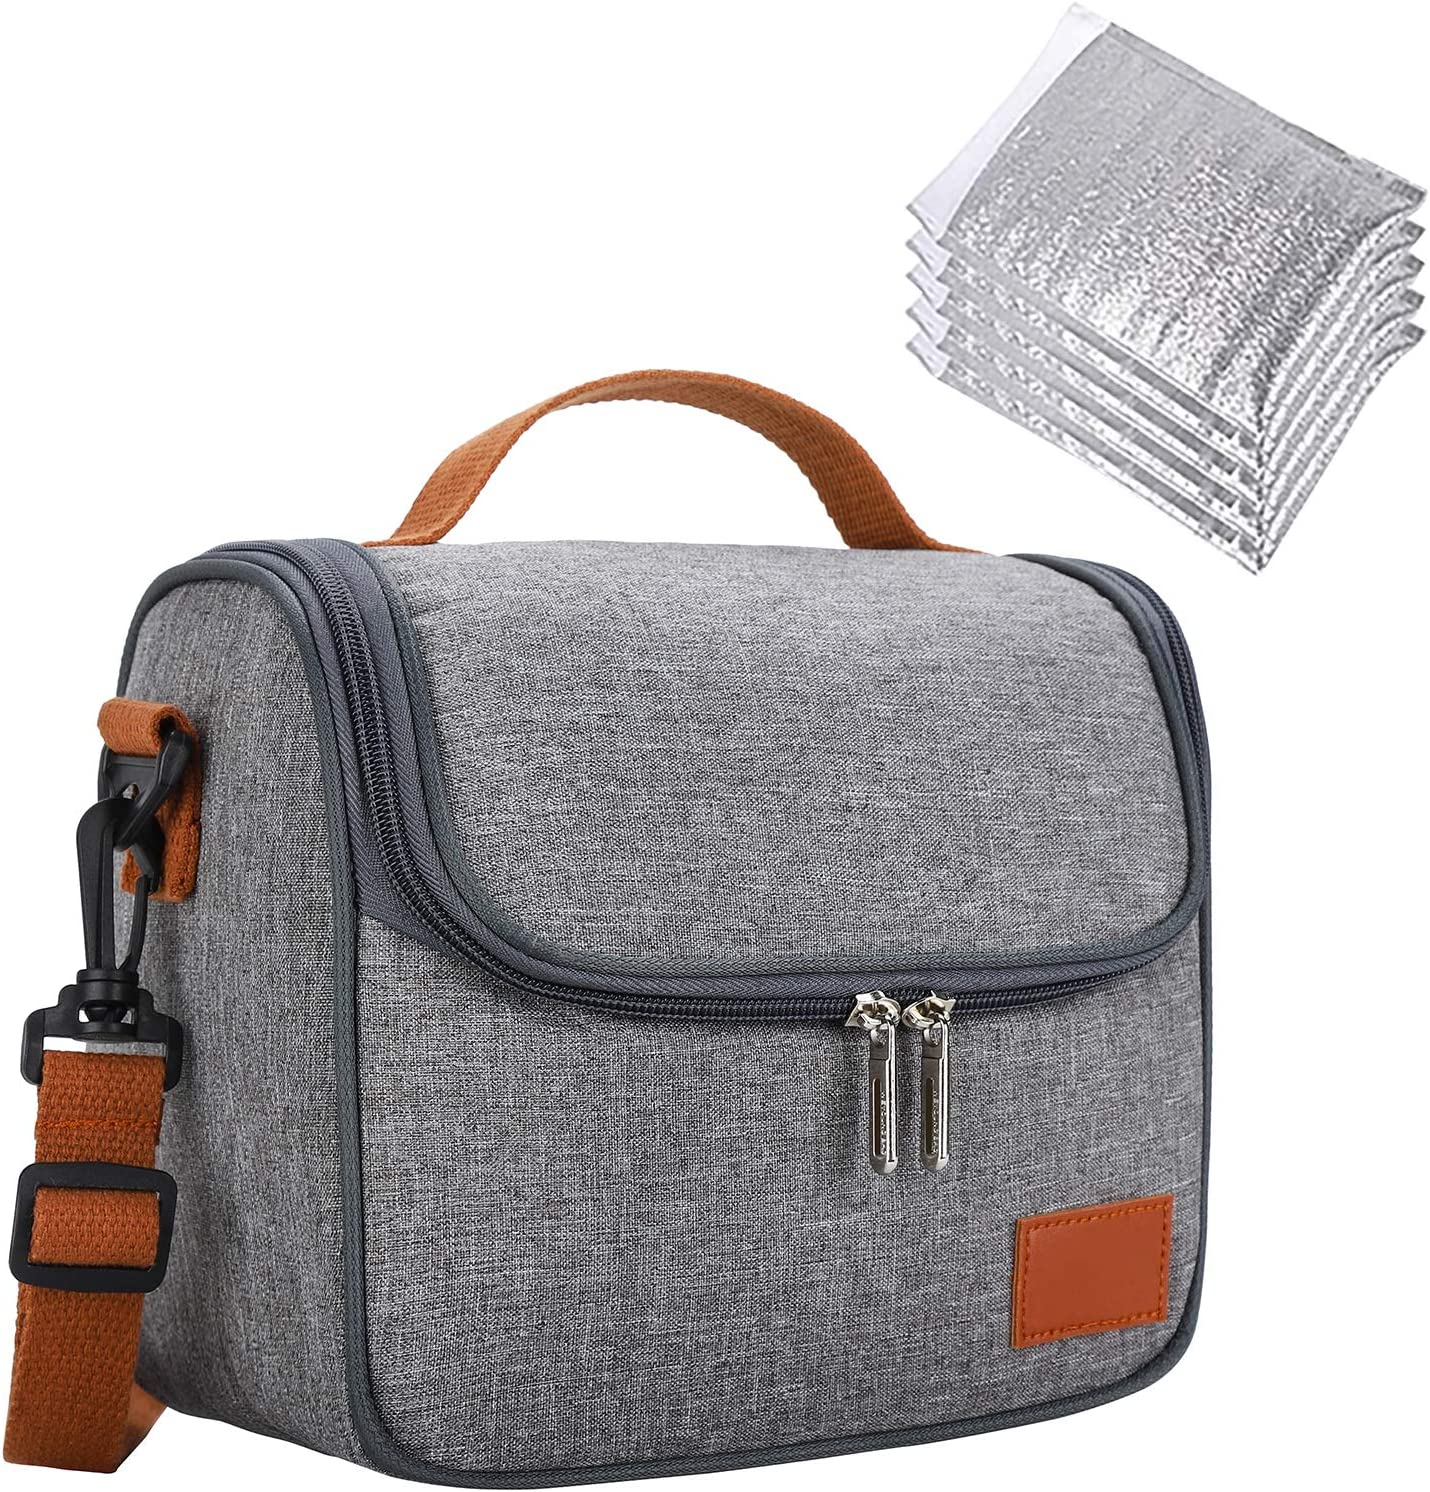 QLS Lunch Bag Lunch Box Insulated Reusable with 5 Thermal Large Tote Adjustable Shoulder Strap Waterproof Soft Outdoor Keeps Warm or Cold Handle Adult Women/Men/Kids/Picnic/Work/School/Gray